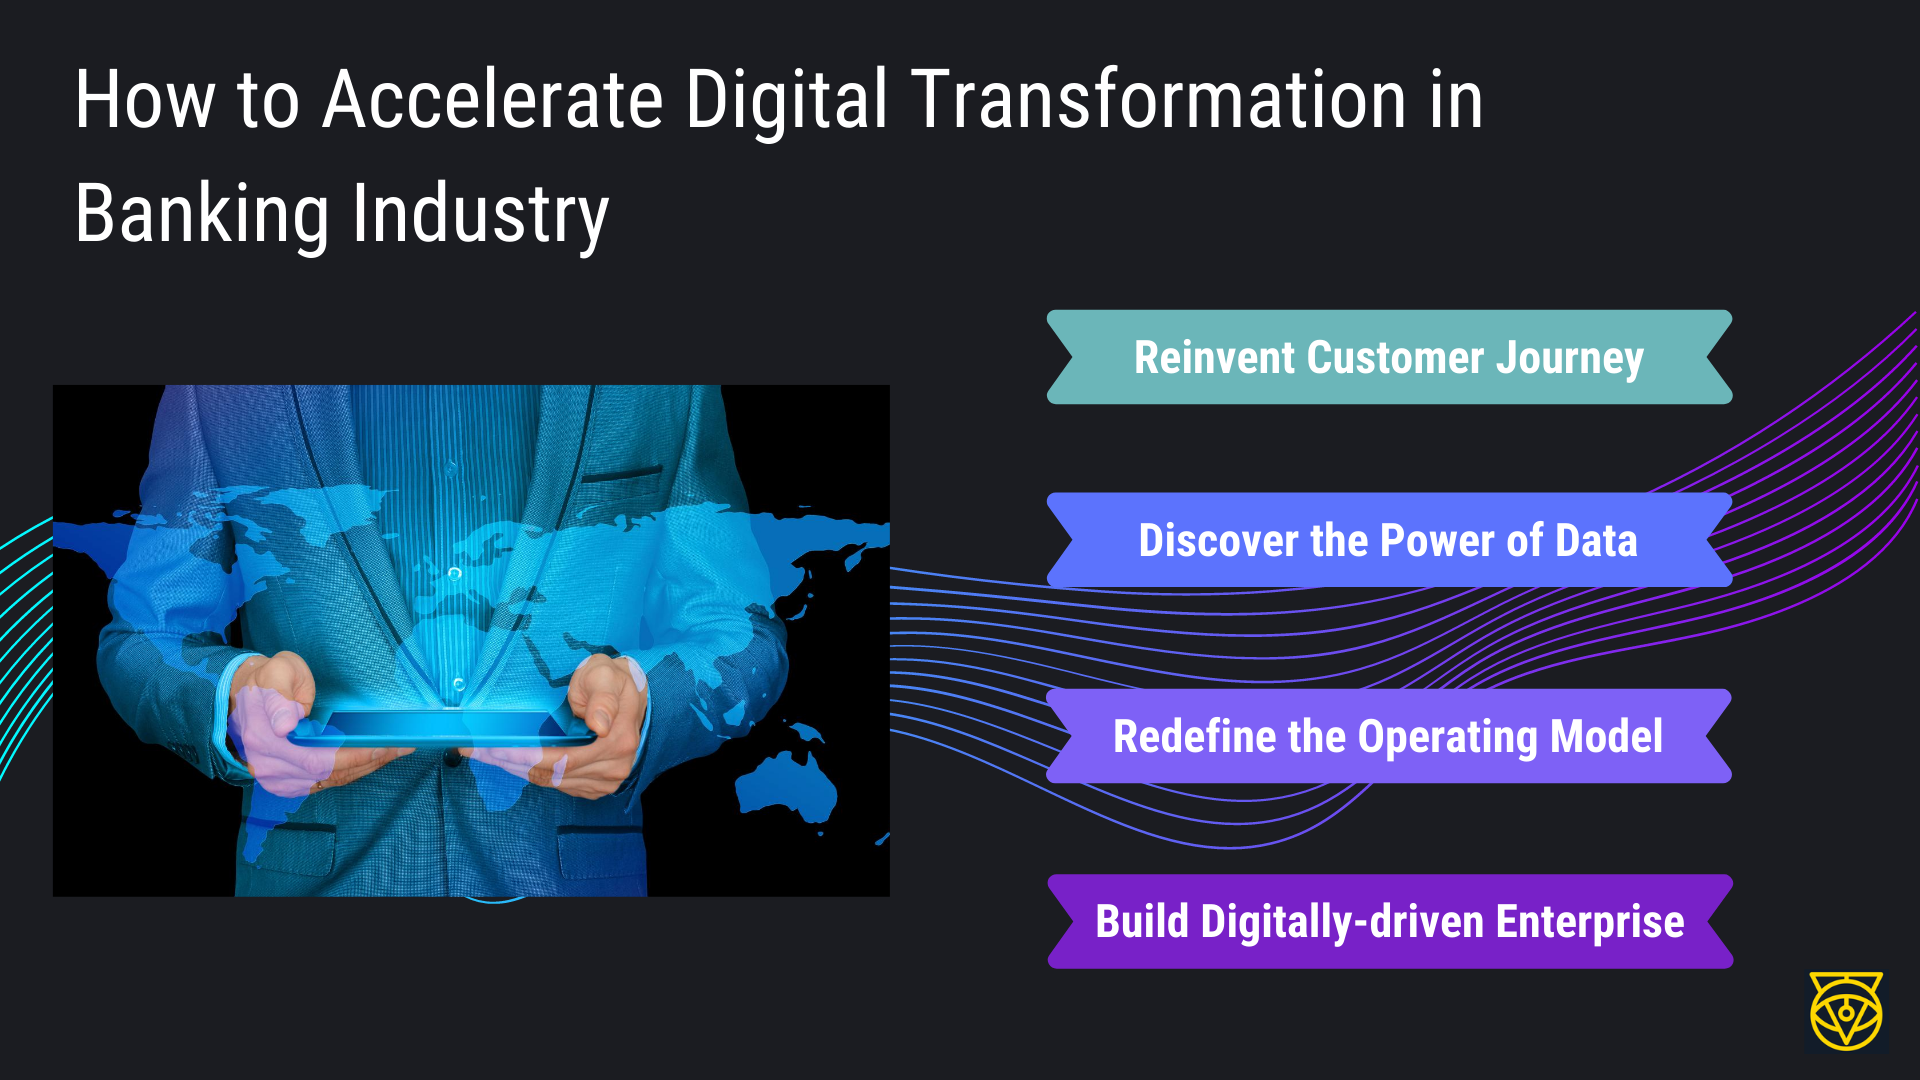 How to Accelerate Digital Transformation in Banking Industry